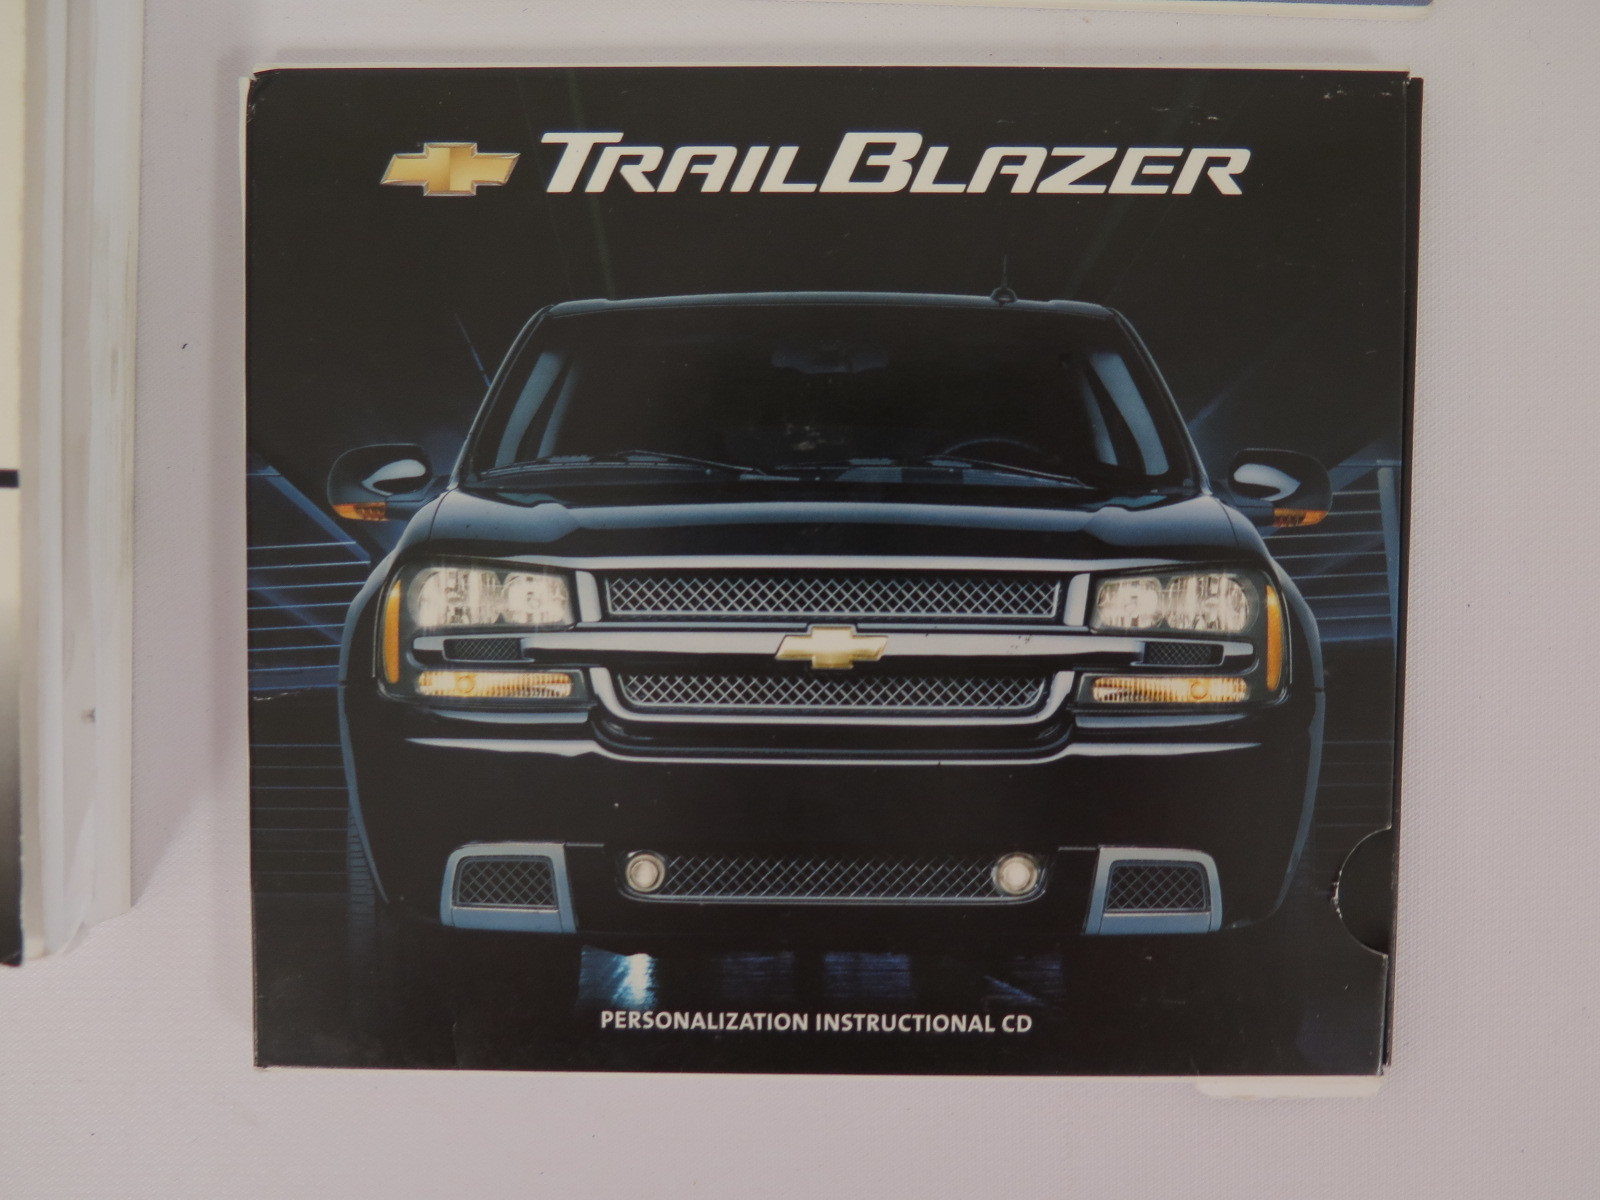 2006 chevy chevrolet trailblazer owners manual book bashful yak rh bashfulyak com owners manual for 2006 chevy trailblazer 2009 Chevrolet Trailblazer